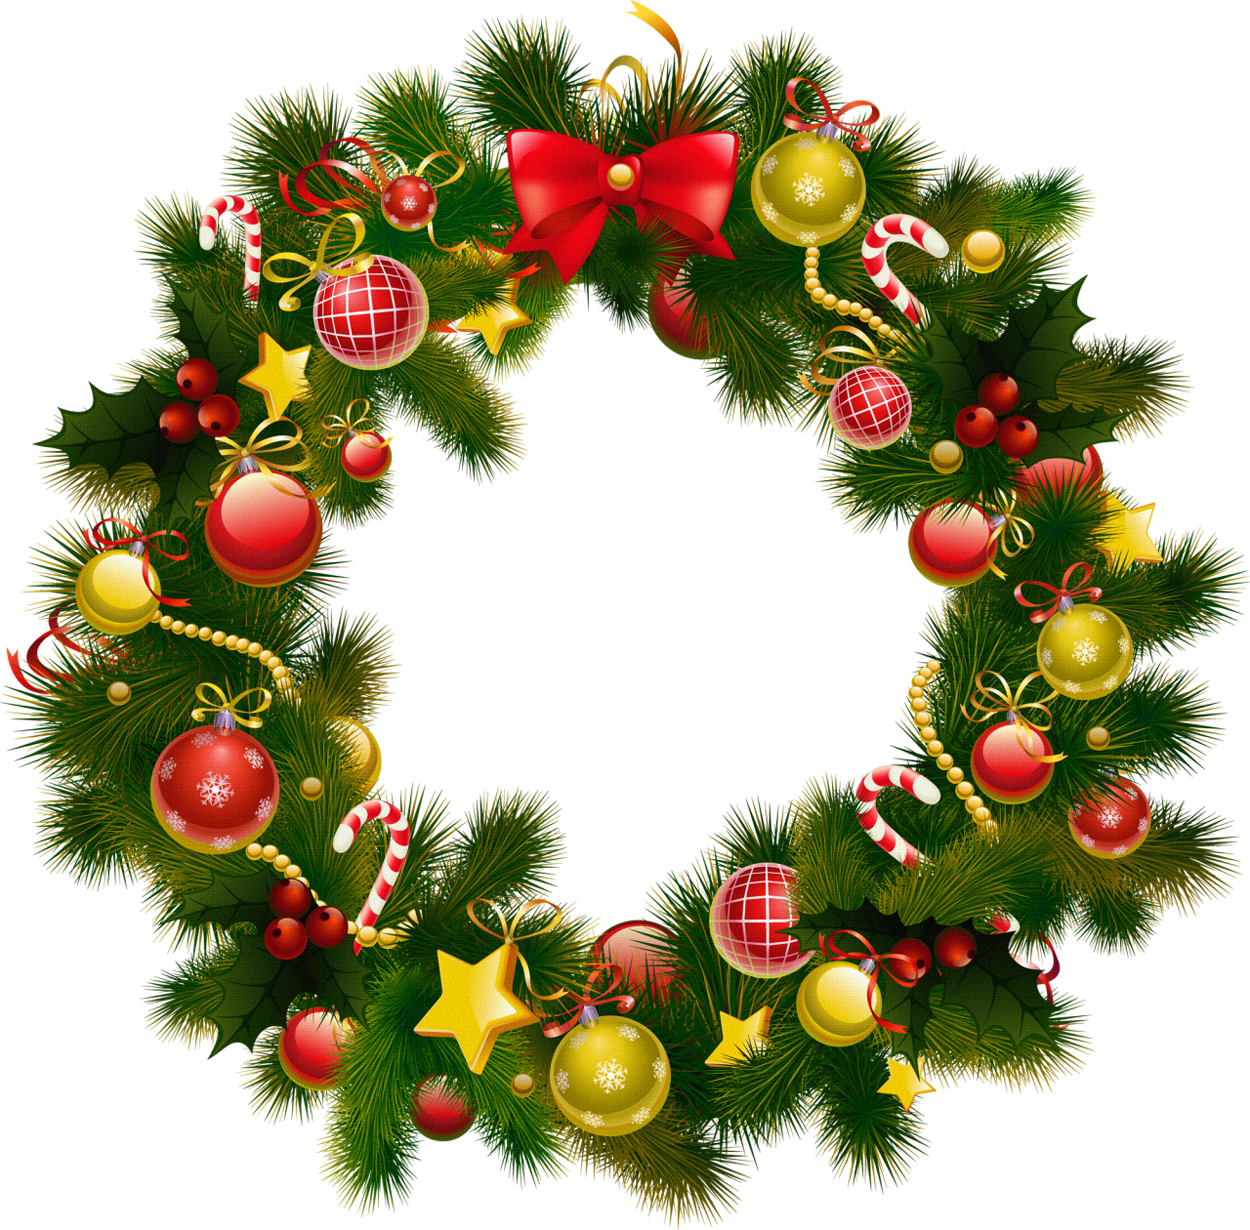 Christmas Wreath Clip Art. 2016/02/18 Christmas Wreath u0026middot; Clipartbest Com